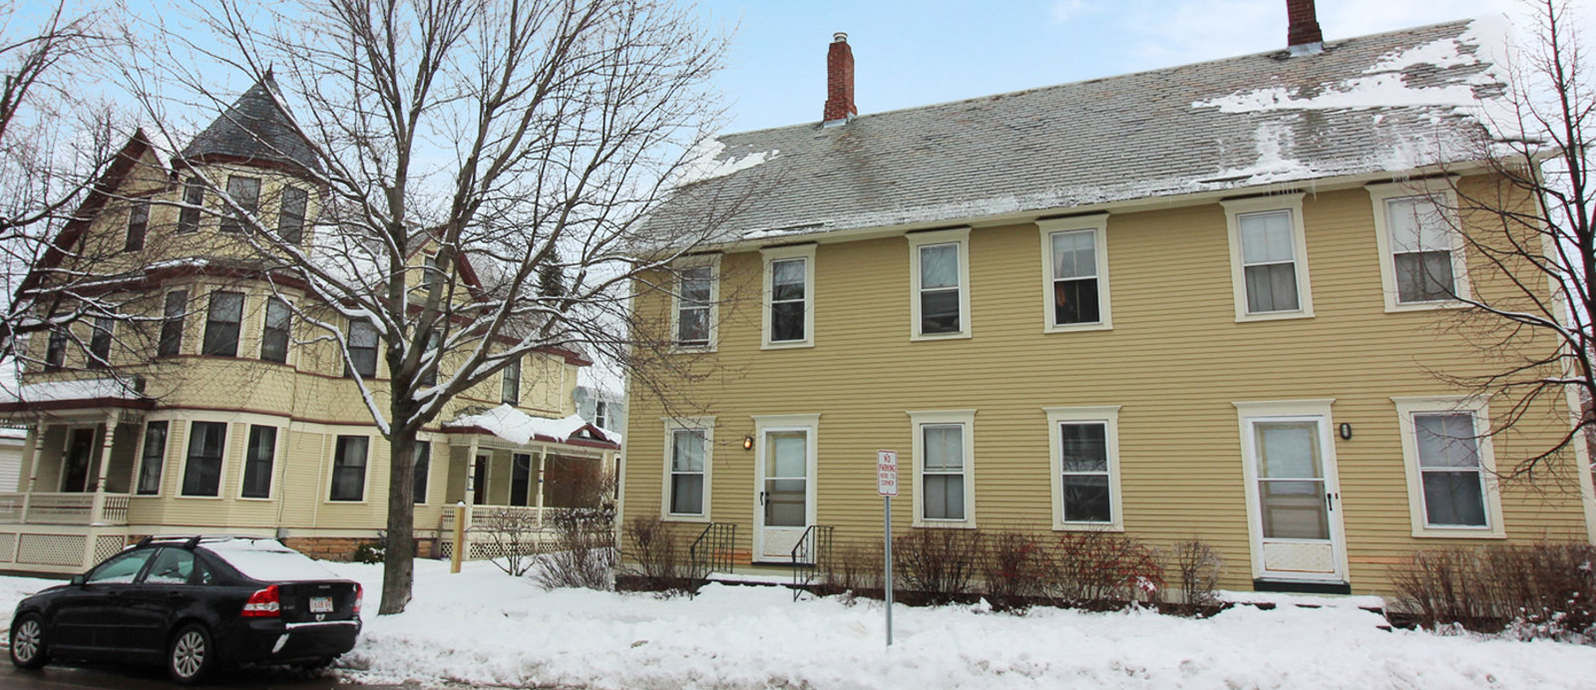 5-unit multi-family buildings for sale Burlington VT